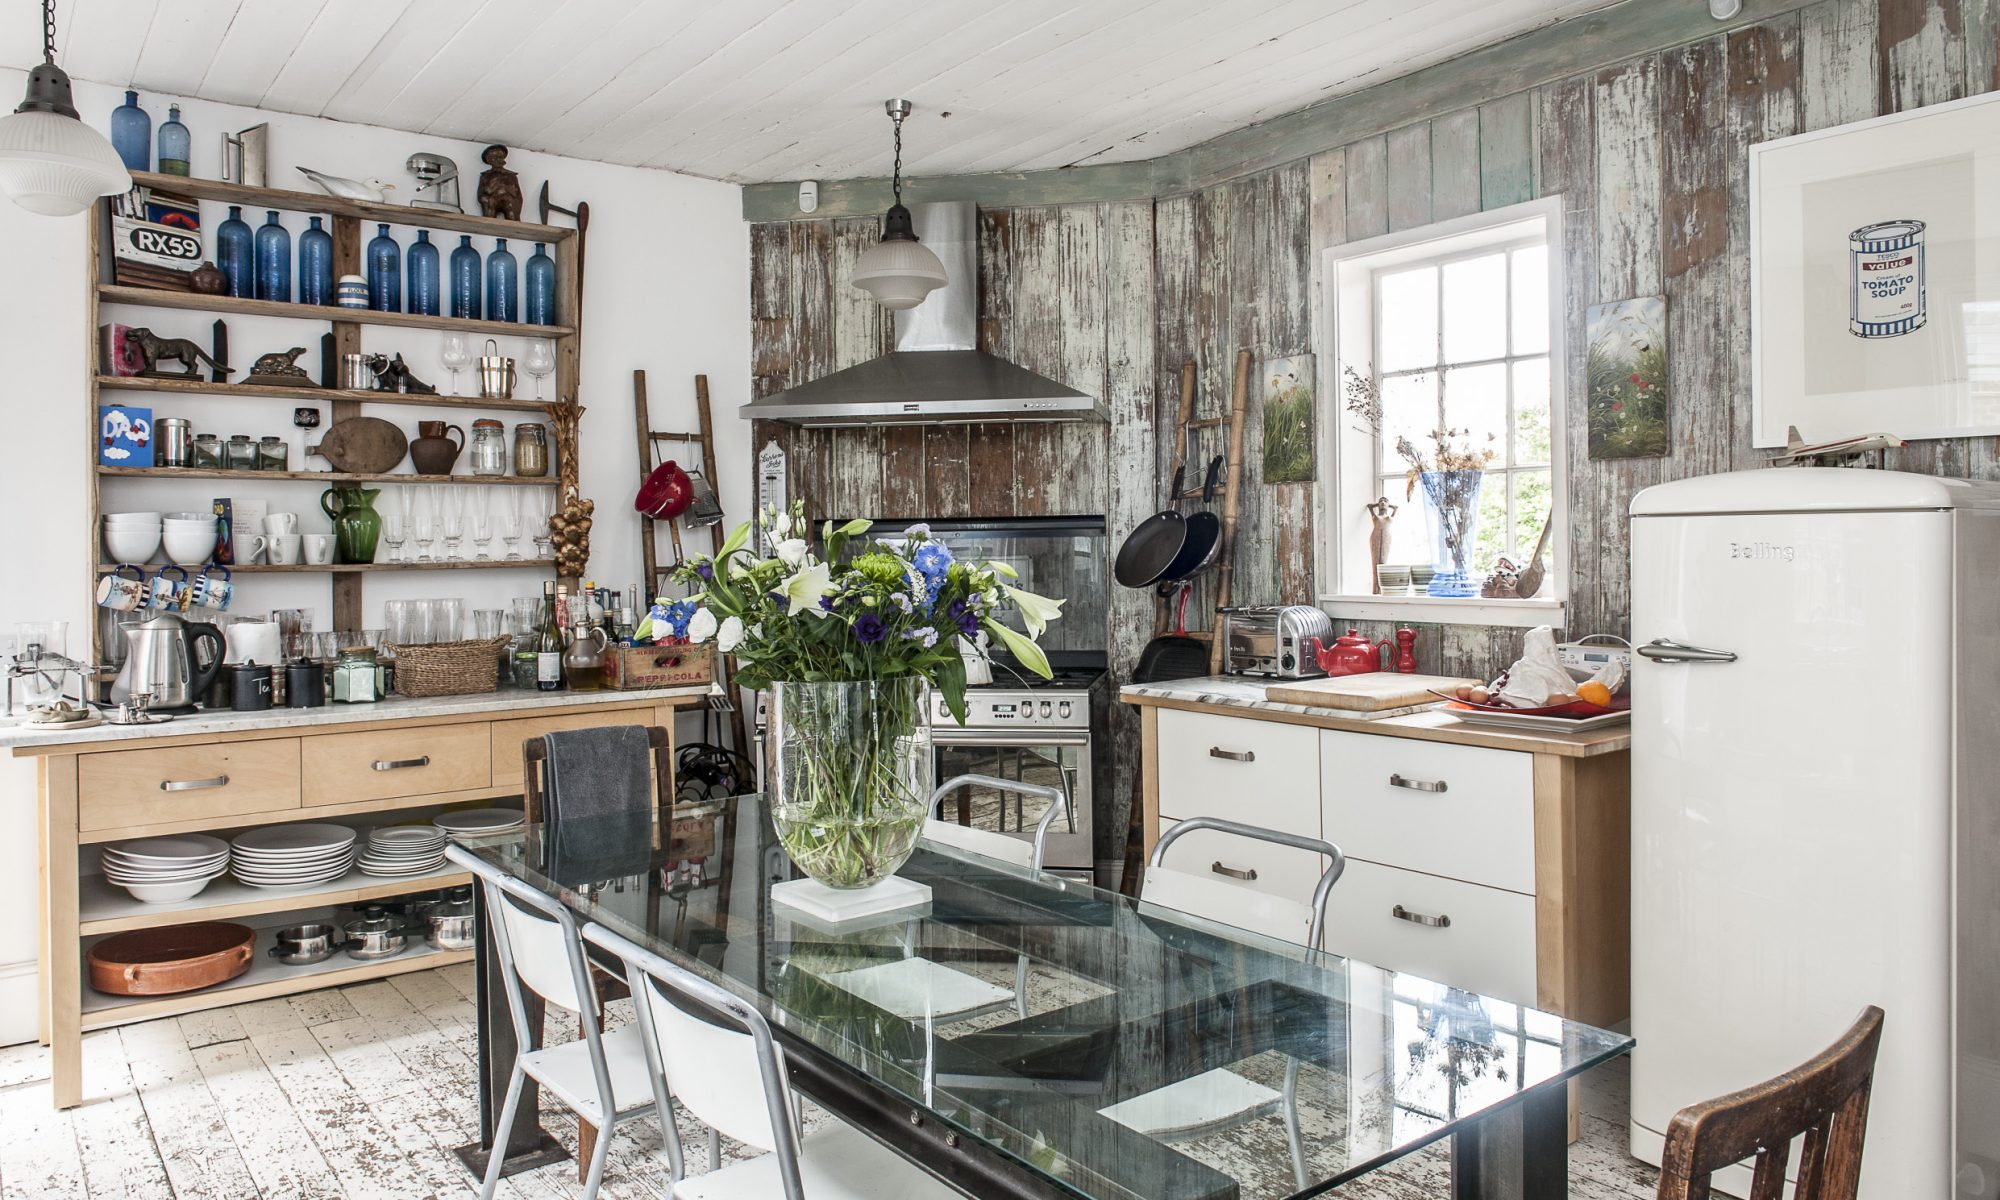 Rob's home is packed with interesting finds including a Philippe Starck coat stand and a kitchen table which once belonged to the chef Joël Robuchon